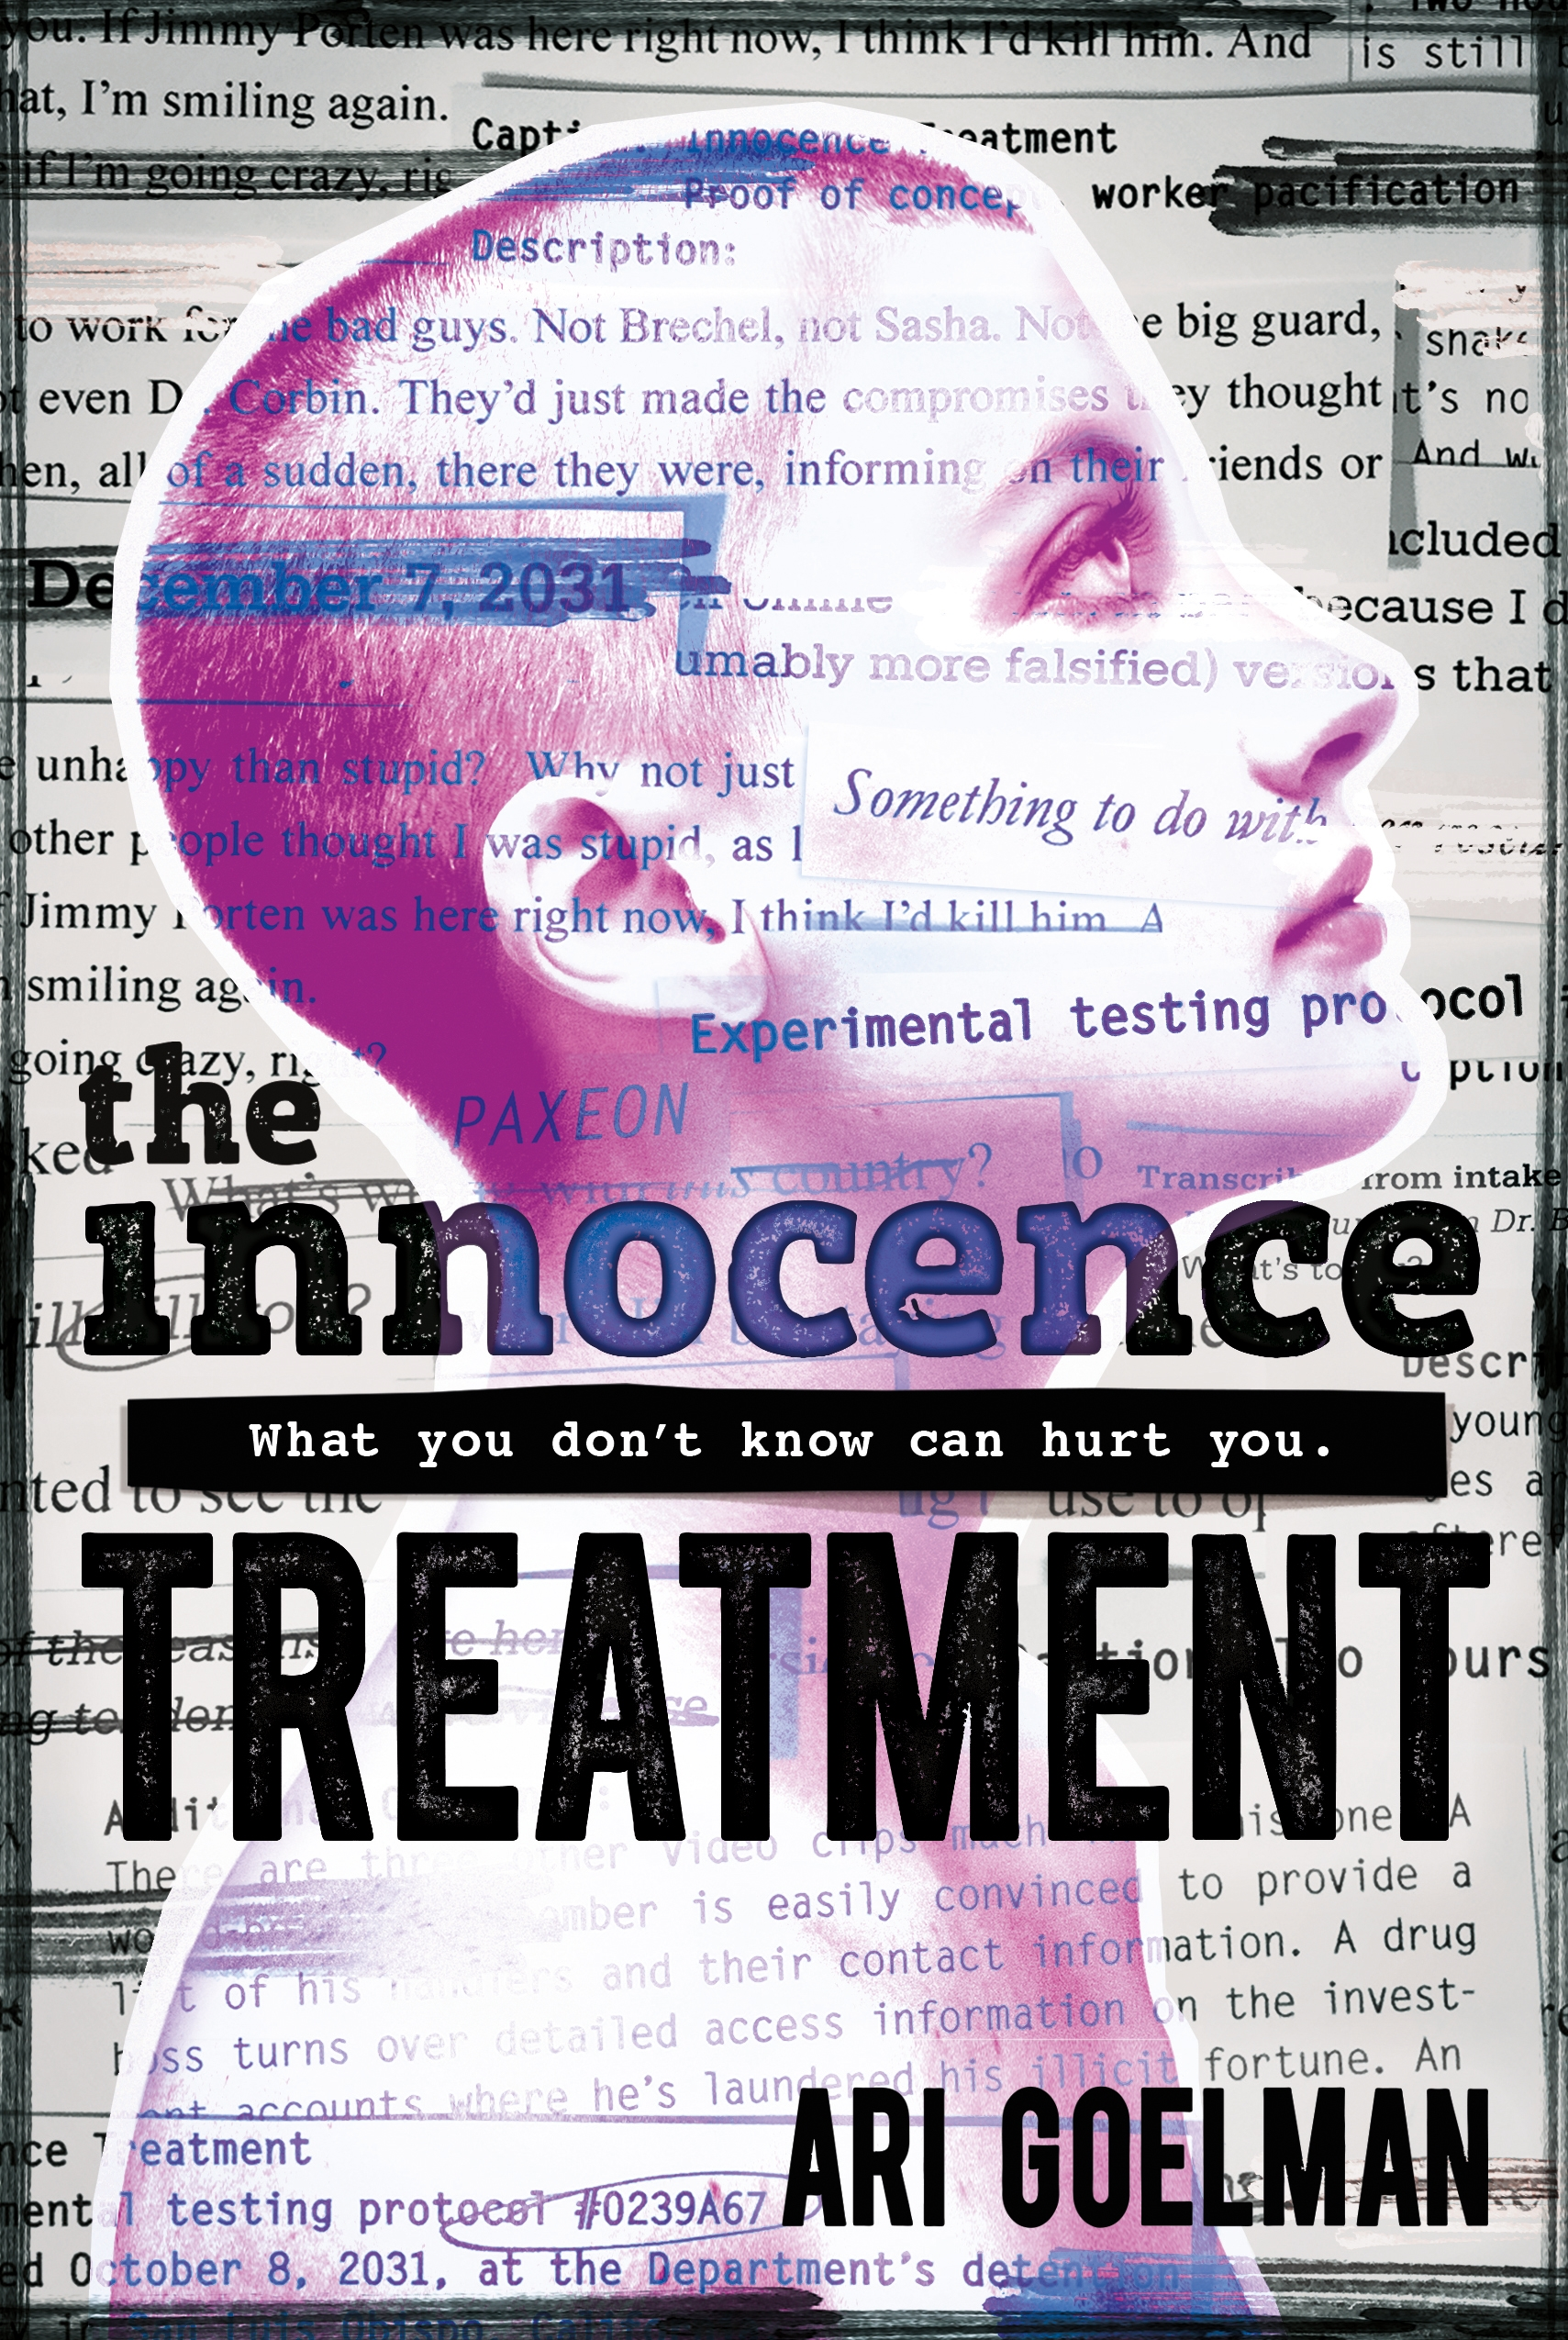 The Innocence Treatment by Ari Goelman